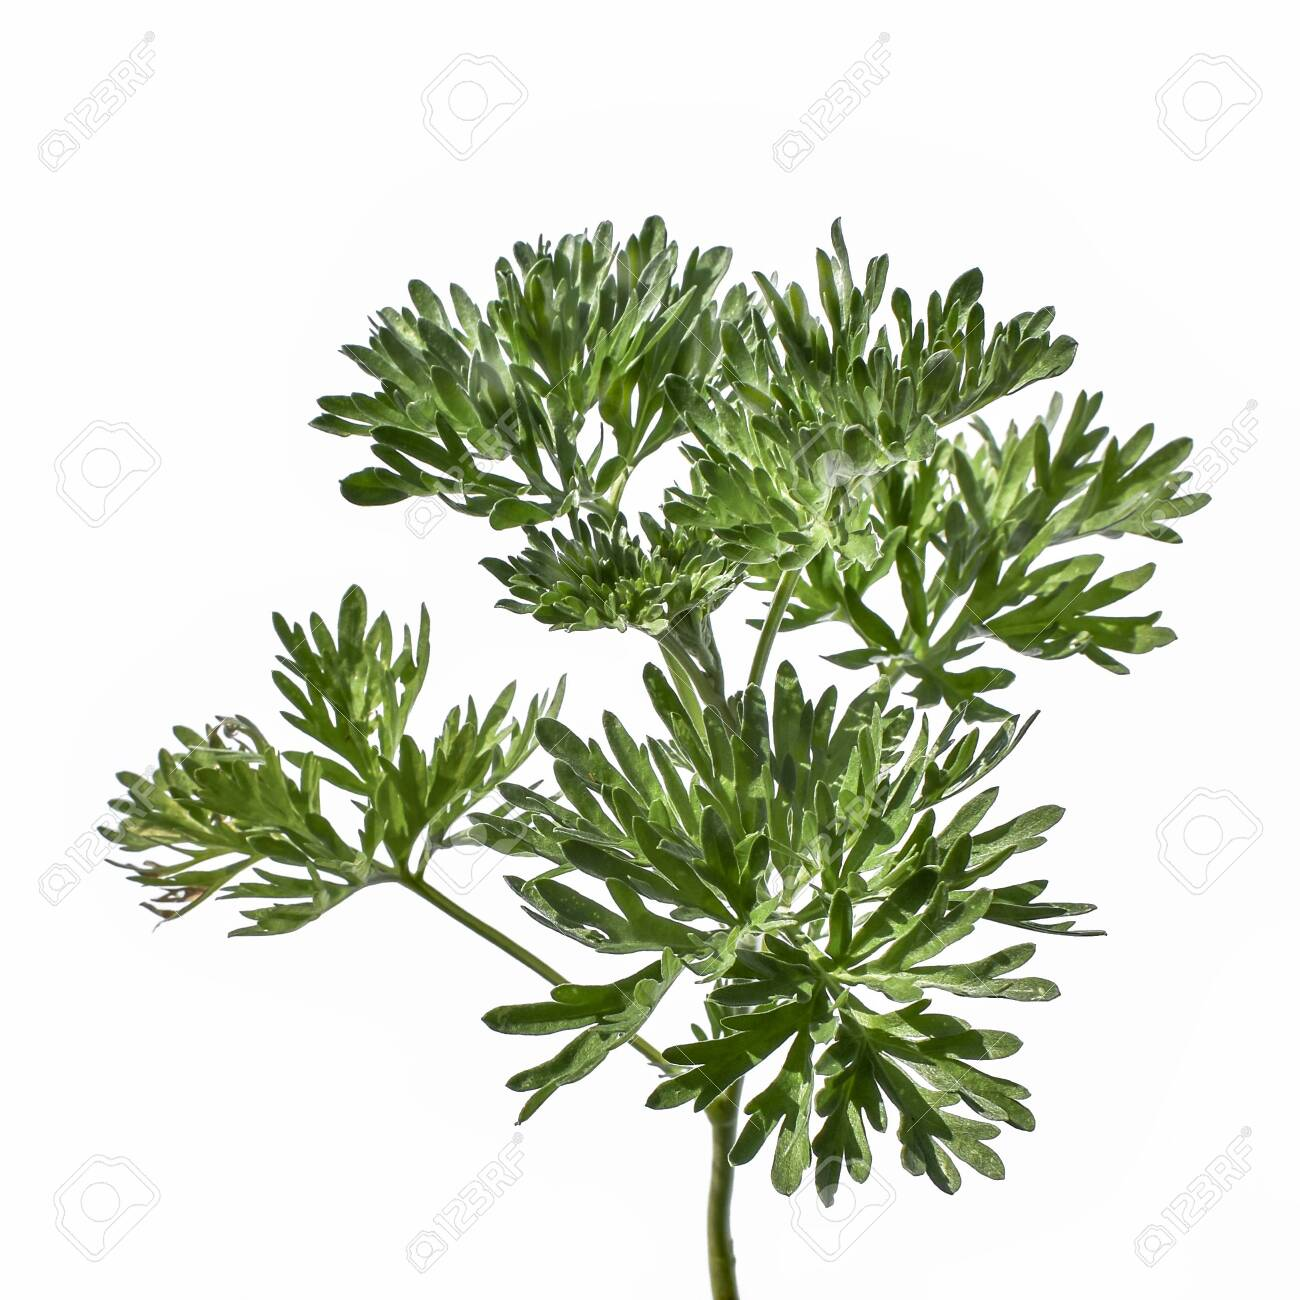 Young green juicy wormwood stalk with lush foliage, close-up, isolated on a white background. Raster clipart of a medical wild Artemisia absinthium plant - 150176306